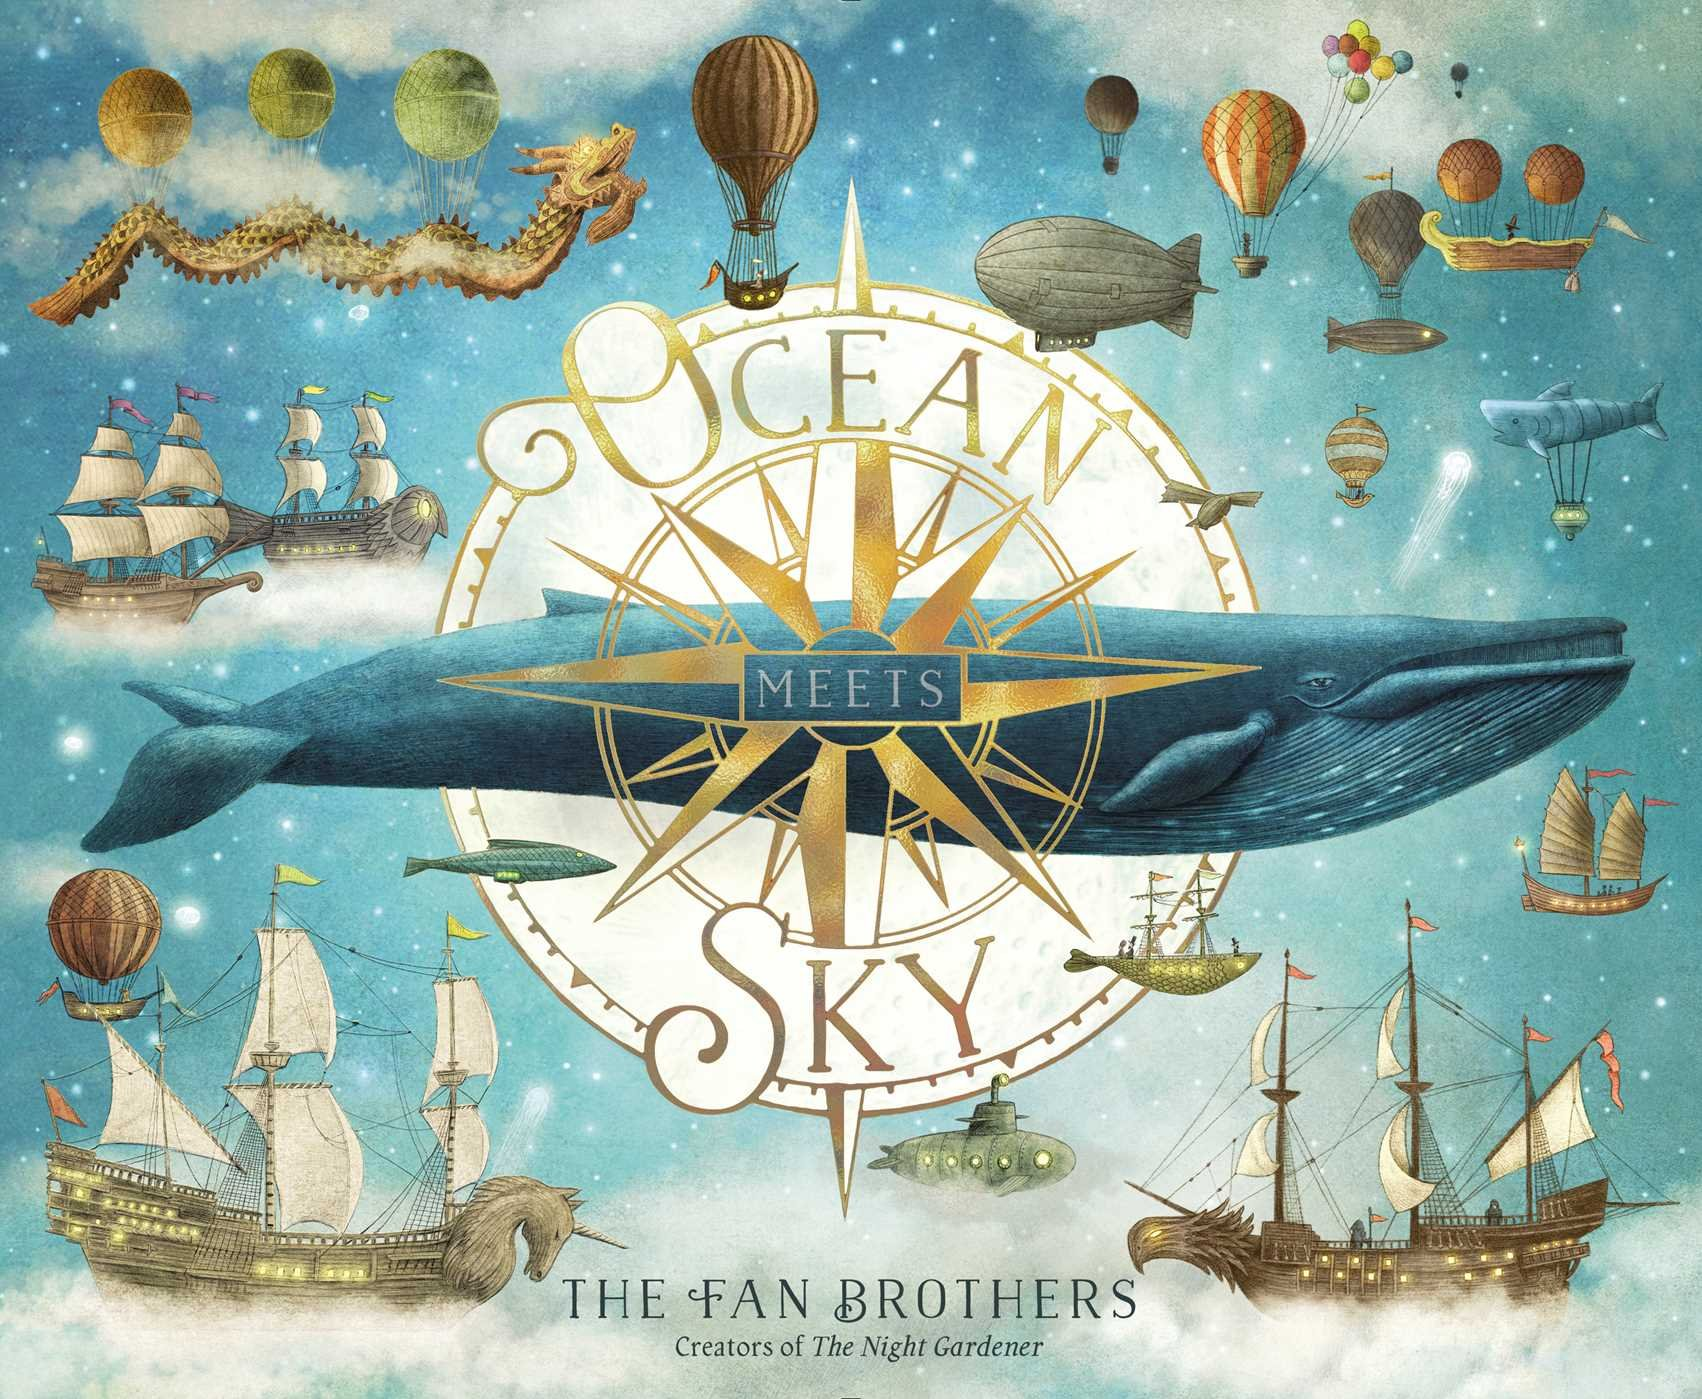 Ocean Meets Sky by Terry & Eric Fan | SLJ Review